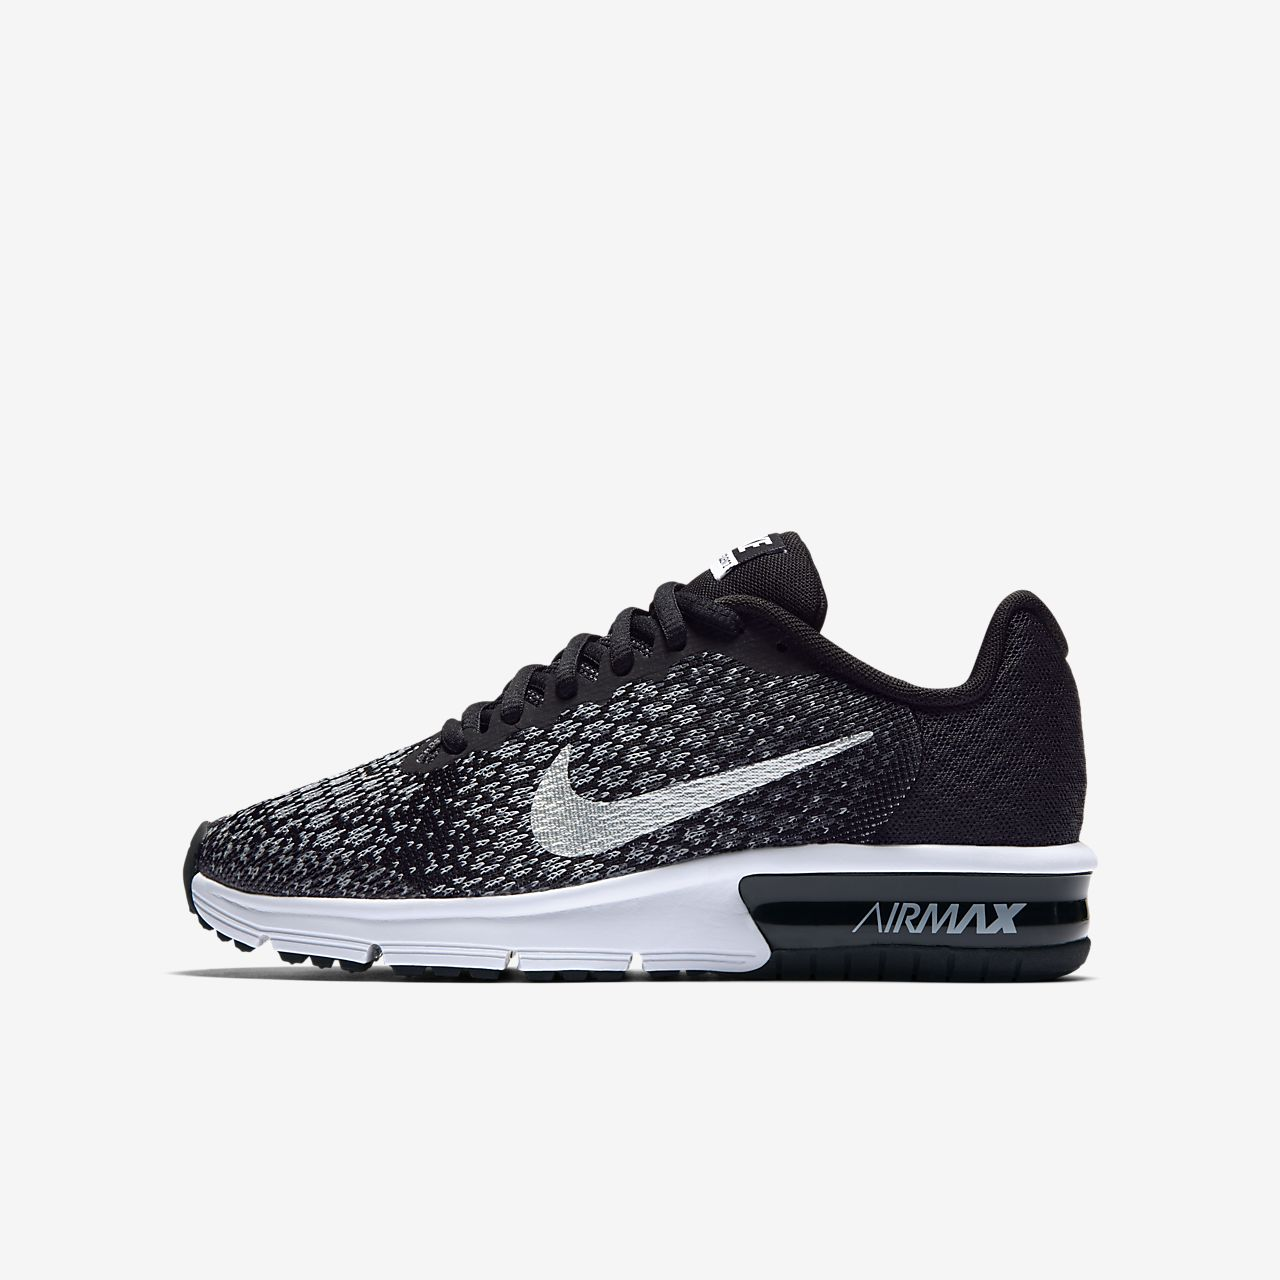 reasonably priced san francisco 50% off avis nike air max sequent